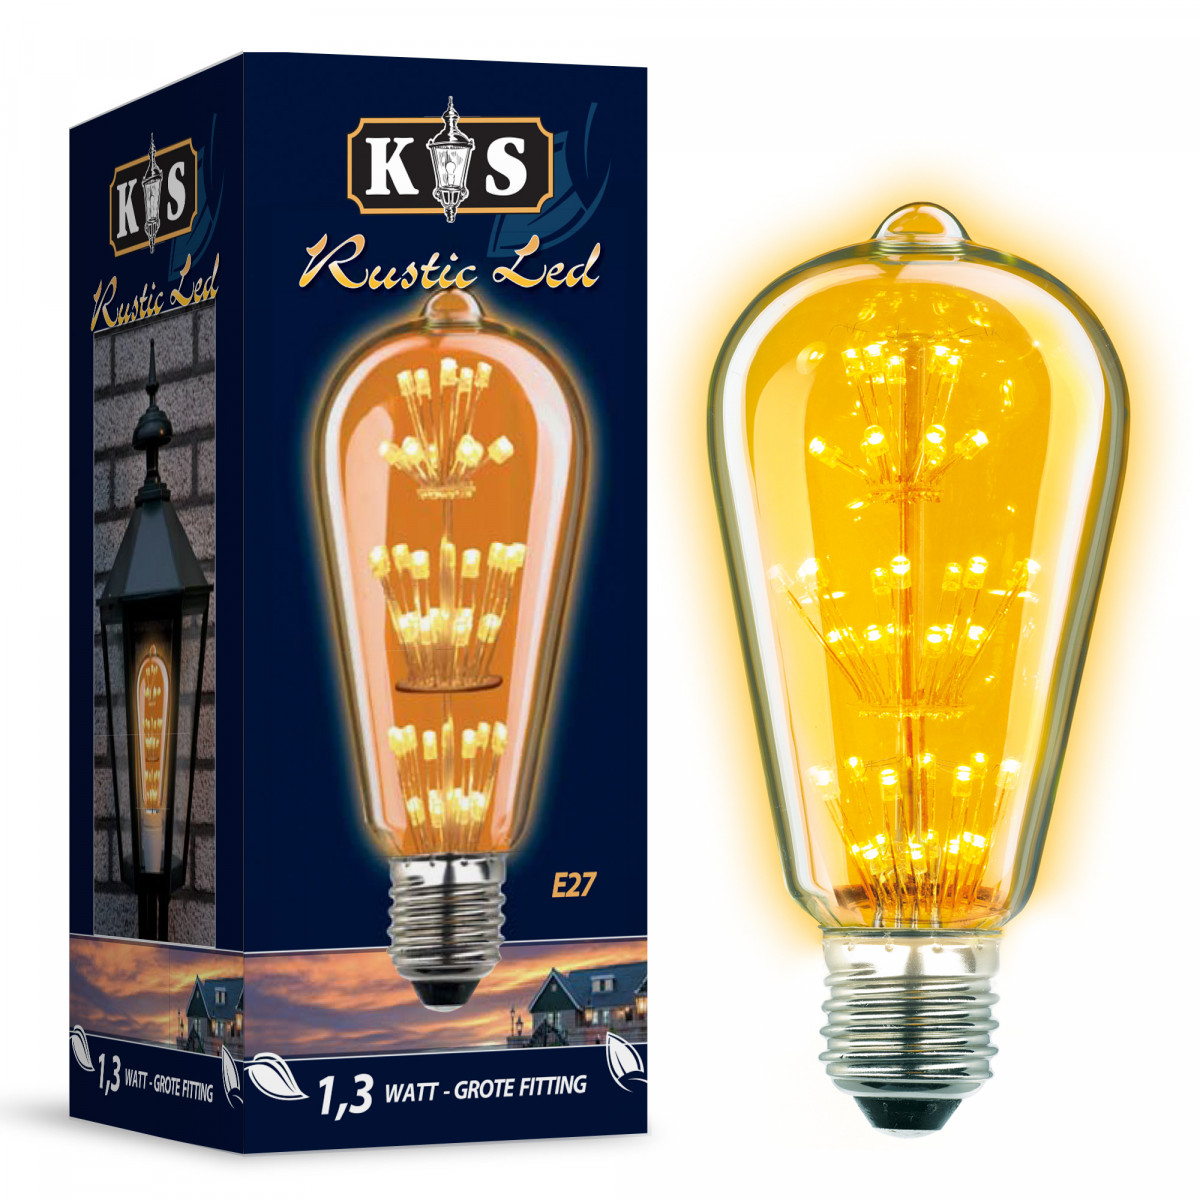 LED Lamp Rustic Led 1,3W